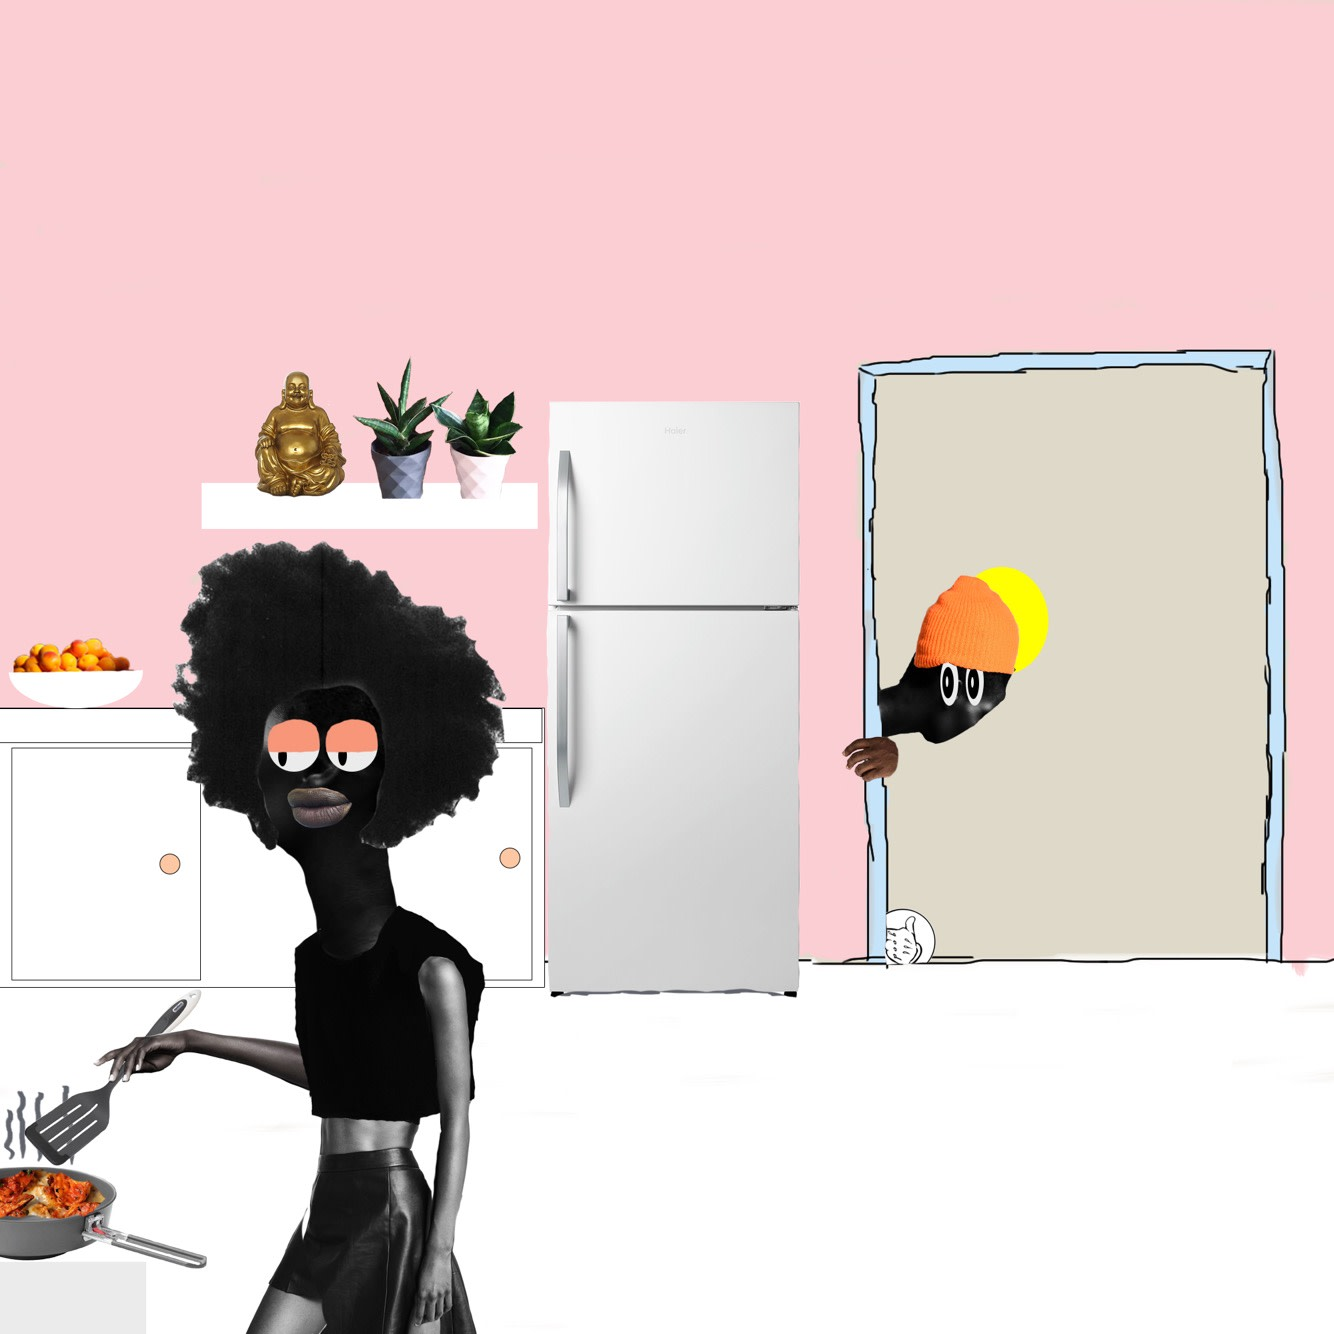 <span class=&#34;link fancybox-details-link&#34;><a href=&#34;/artworks/313-tyler-deauvea-ohh-she-can-cook-cook-2018/&#34;>View Detail Page</a></span><div class=&#34;artist&#34;><strong>Tyler Deauvea</strong></div> <div class=&#34;title&#34;><em>OHH, SHE CAN COOK COOK </em>, 2018</div> <div class=&#34;medium&#34;>Digital collage on photo paper</div> <div class=&#34;dimensions&#34;>11 1/2 x 11 1/2 in<br /> 29.2 x 29.2 cm</div> <div class=&#34;edition_details&#34;>Edition of 10 plus 1 artist's proof</div>